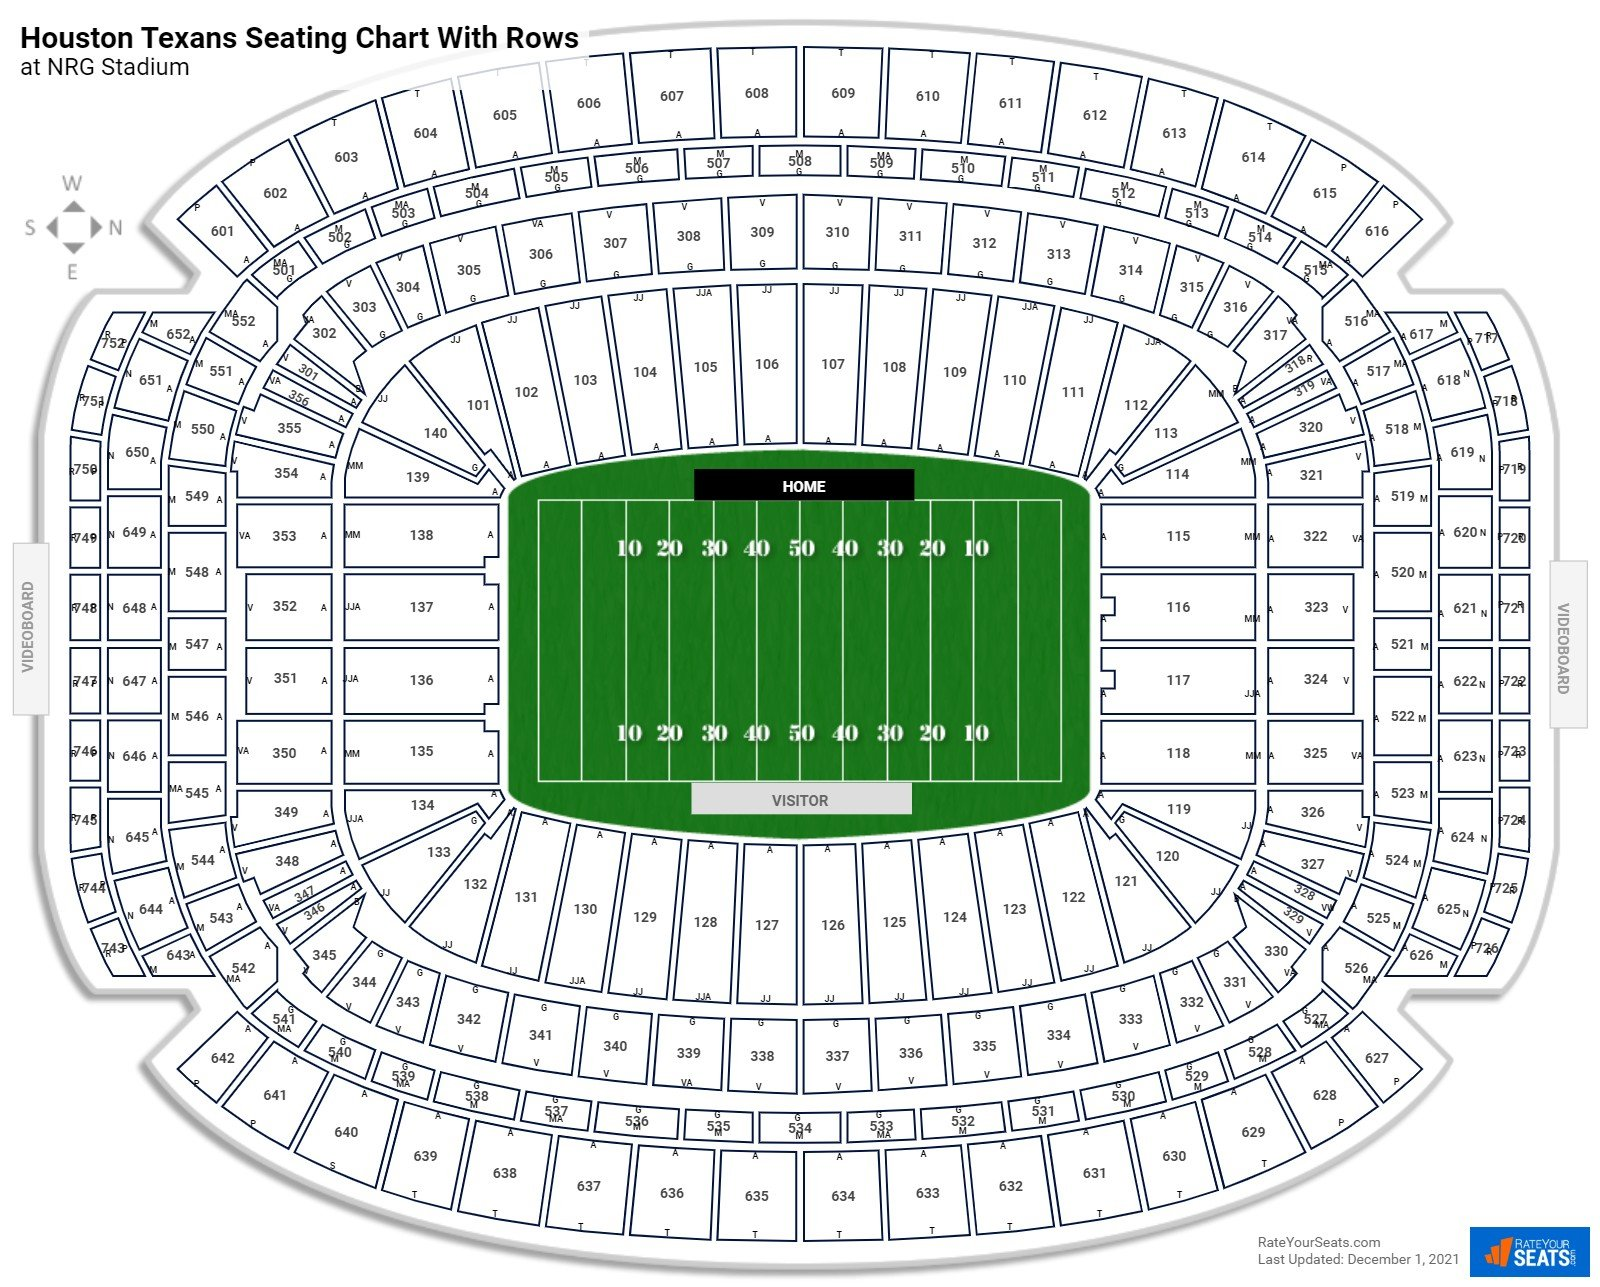 NRG Stadium seating chart with rows football